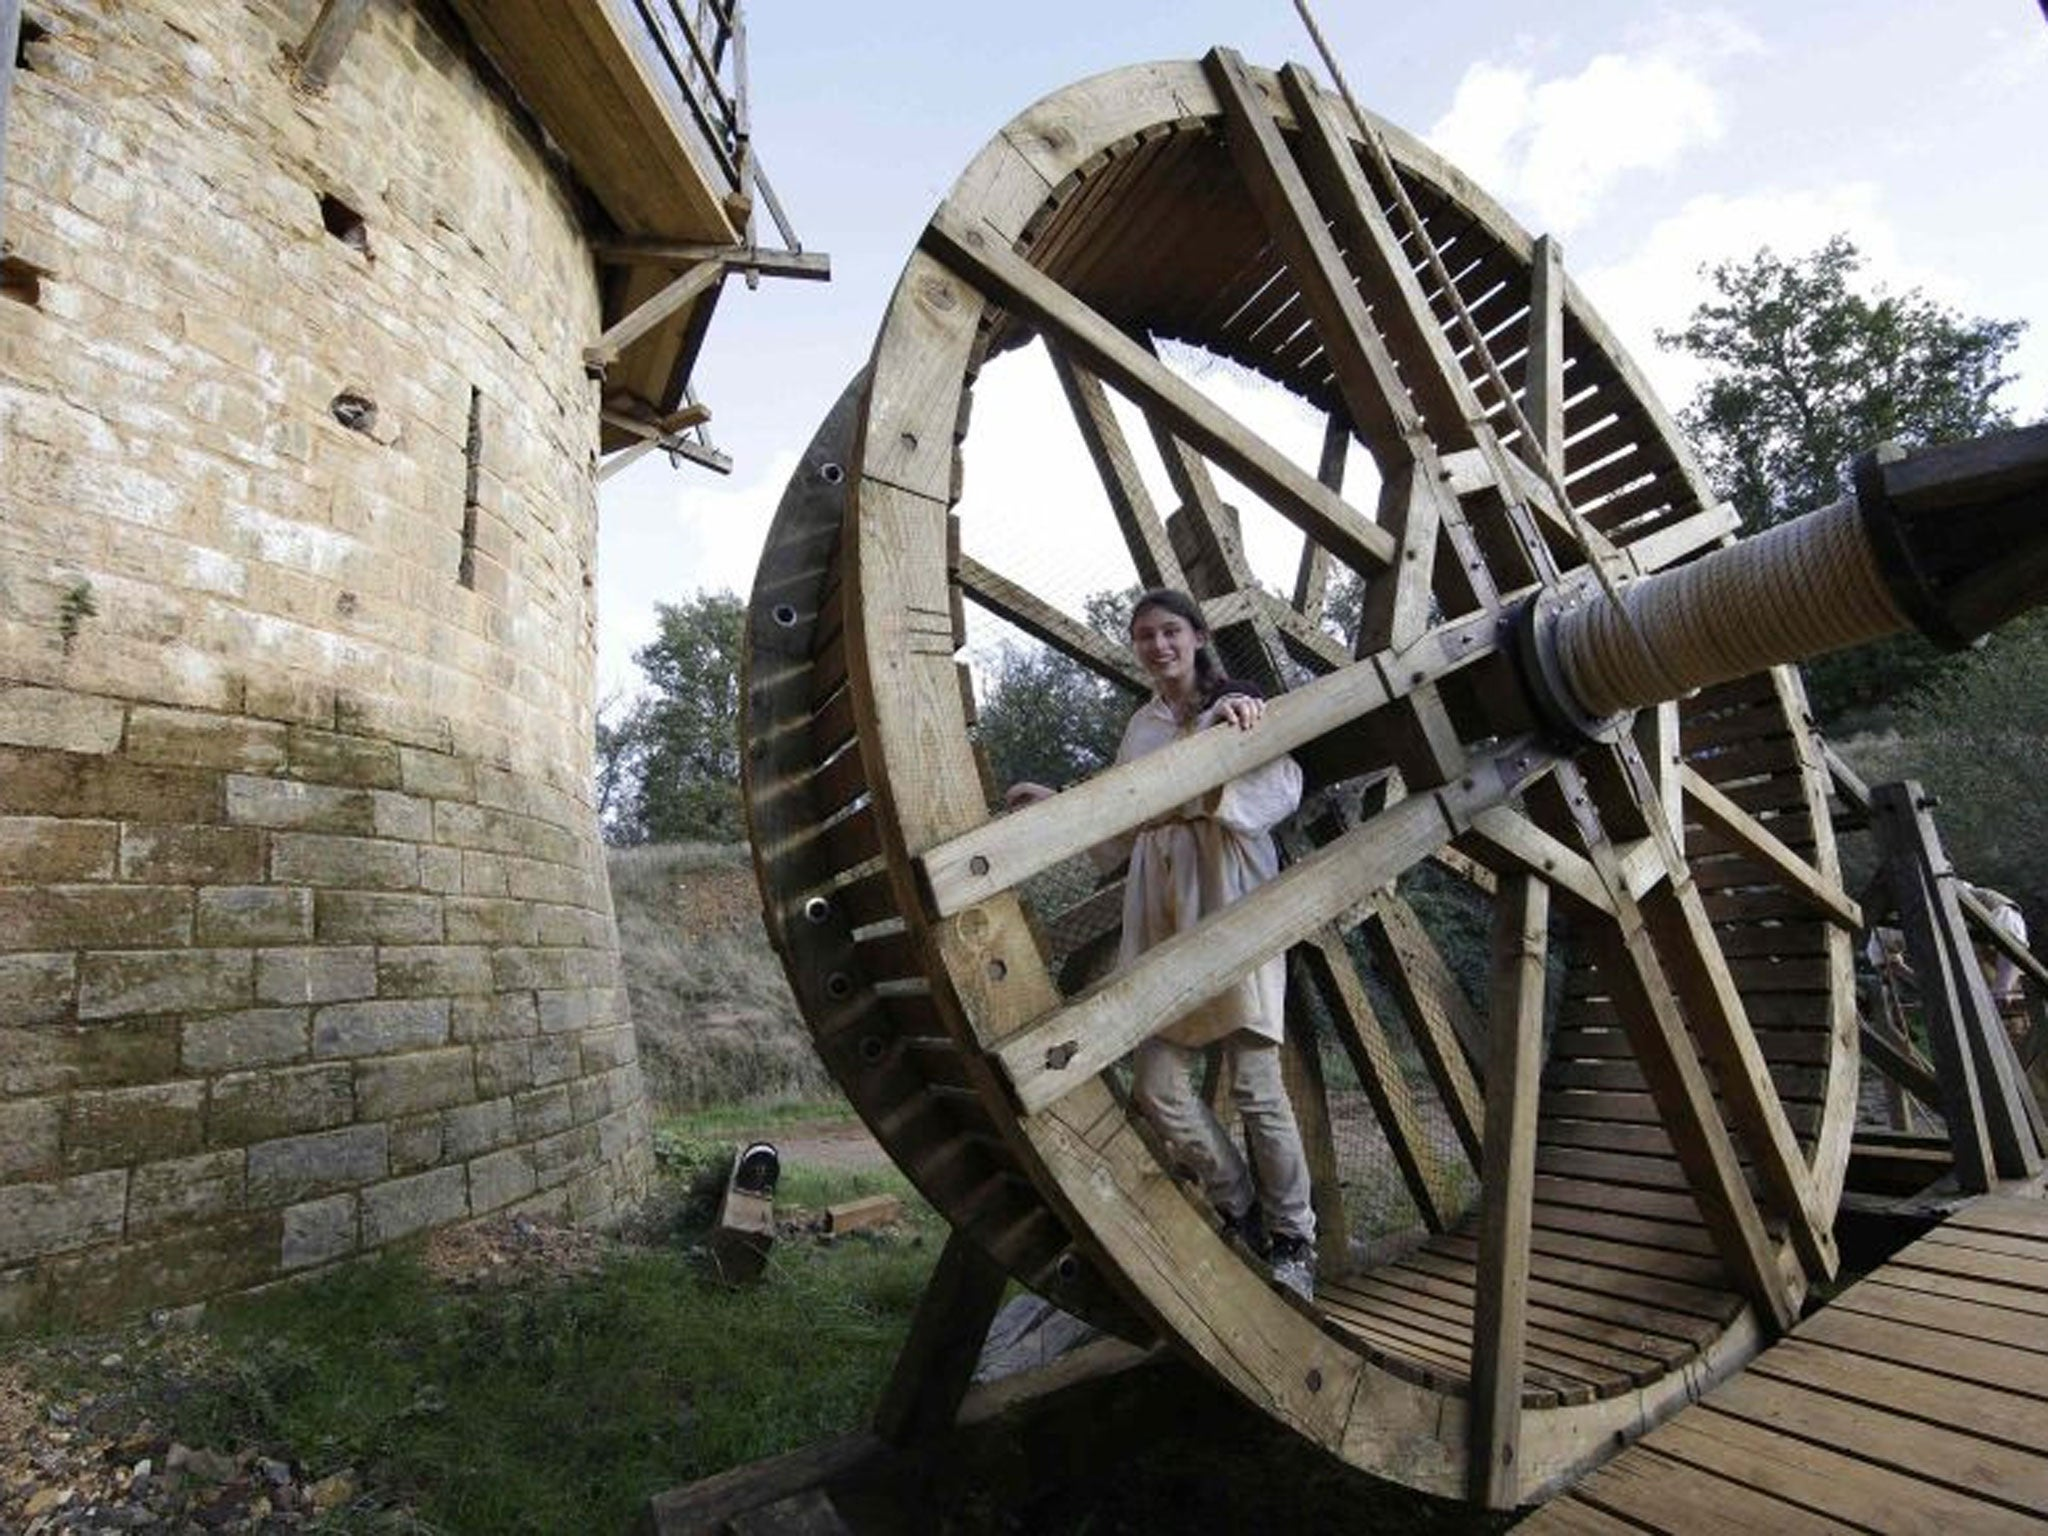 In pictures: Chateau de Guedelon in the Burgundy region of